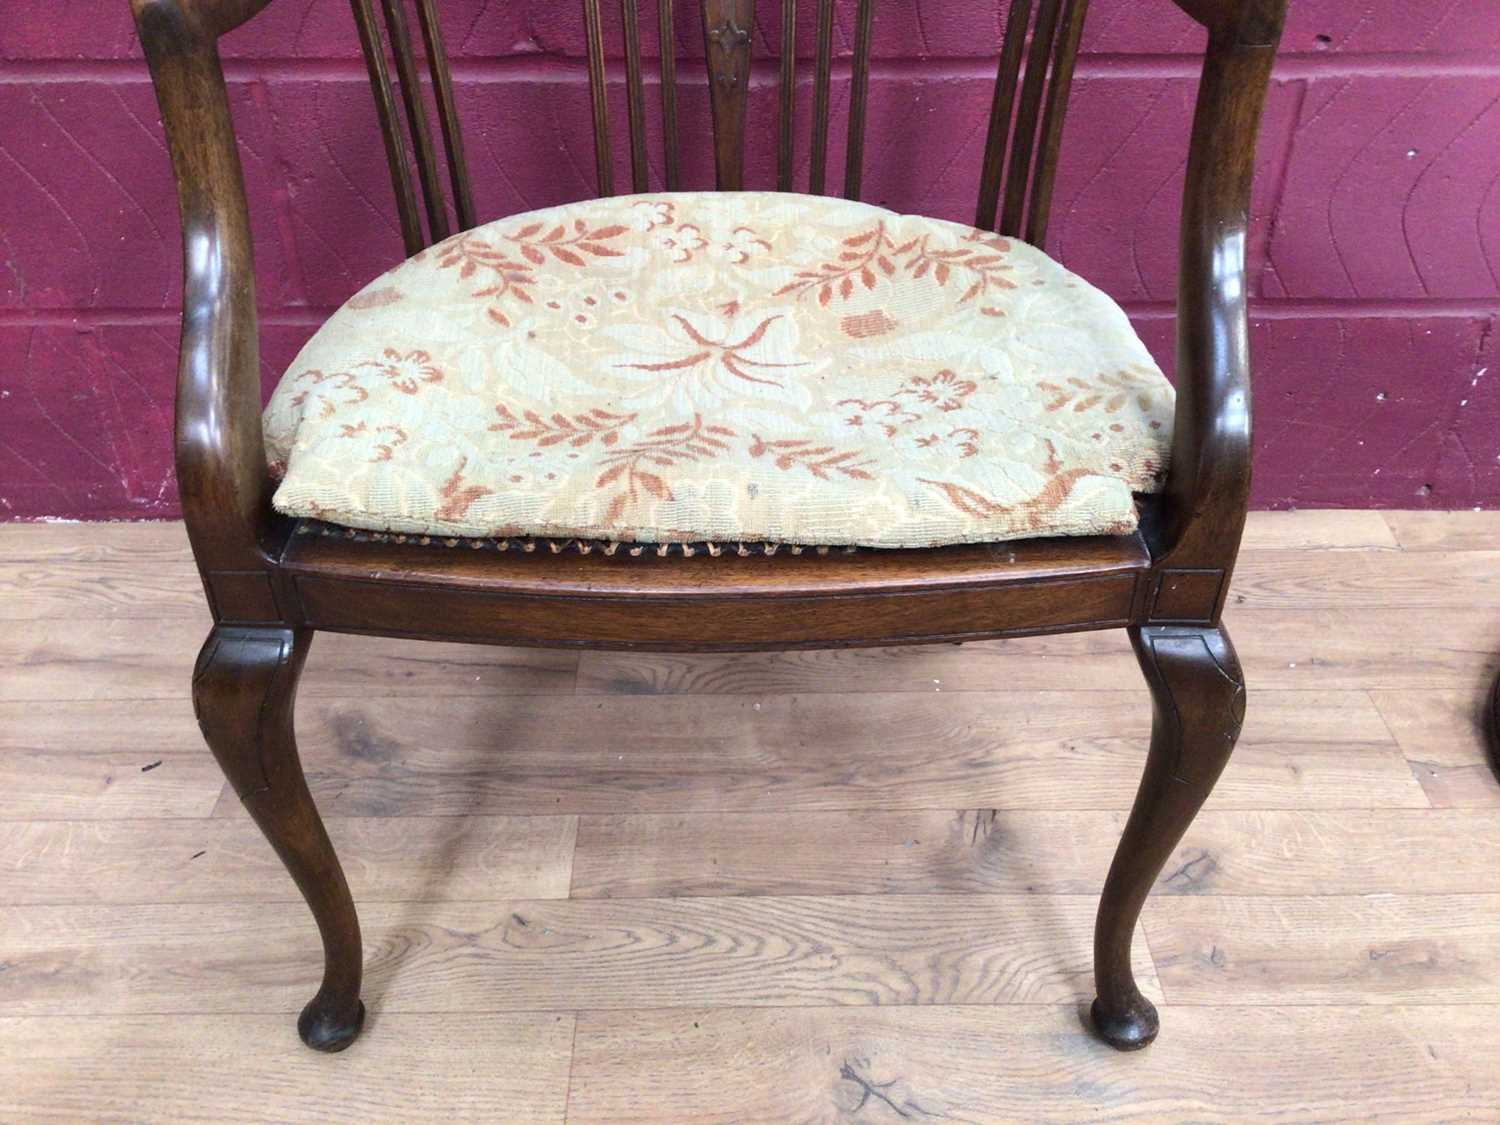 Edwardian mahogany tub chair with caned seat and a mahogany framed oval wall mirror (2) - Image 2 of 6